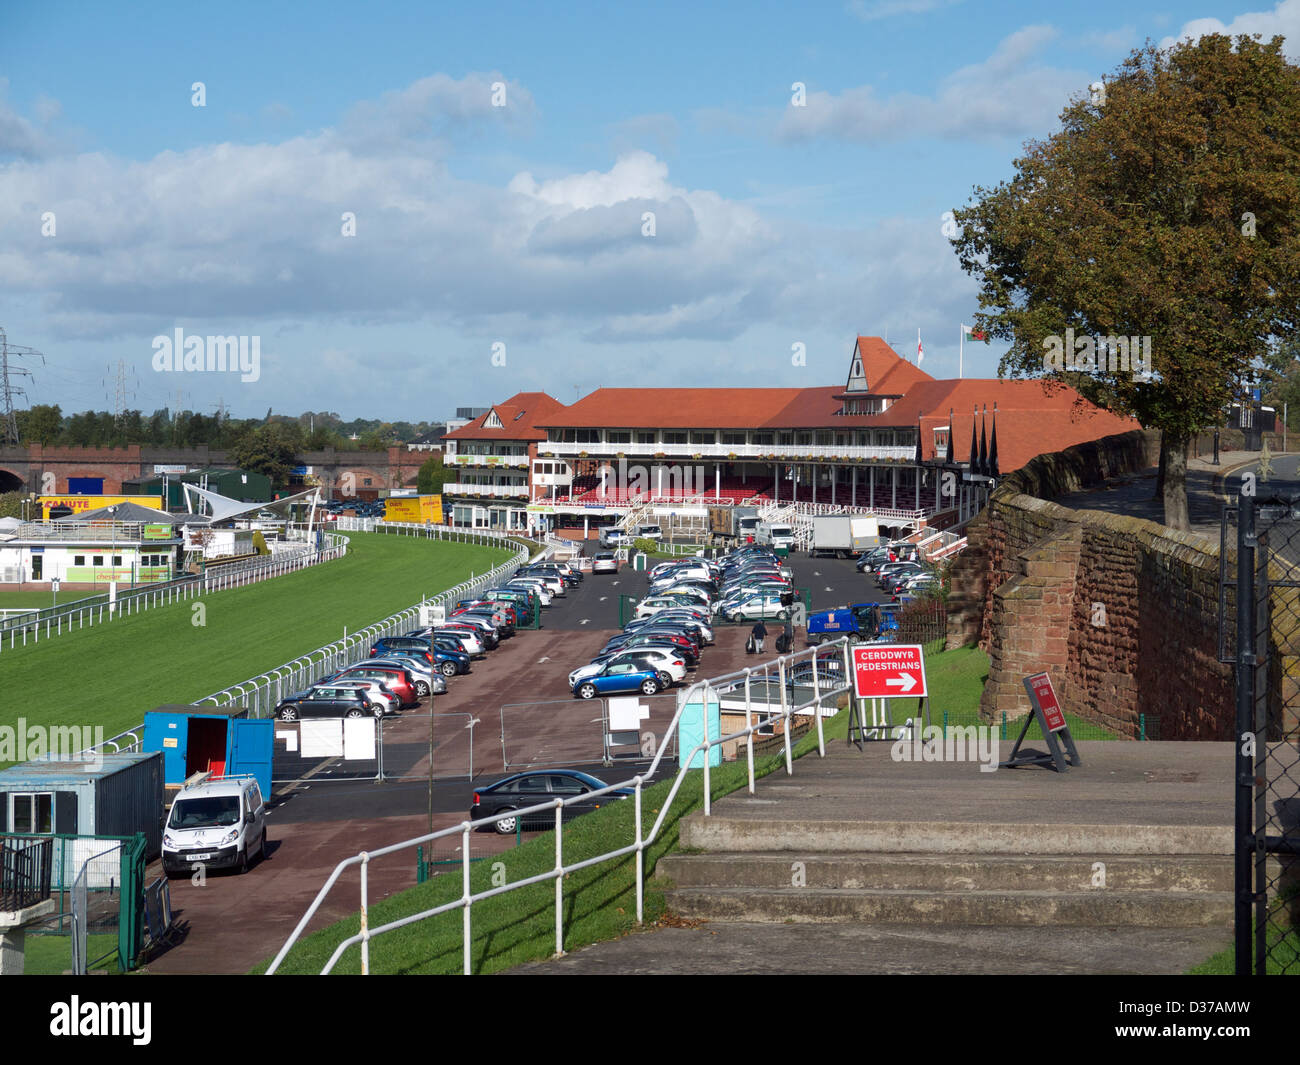 Chester Racecourse, known as the Roodee, is according to official records the oldest racecourse still in use in - Stock Image